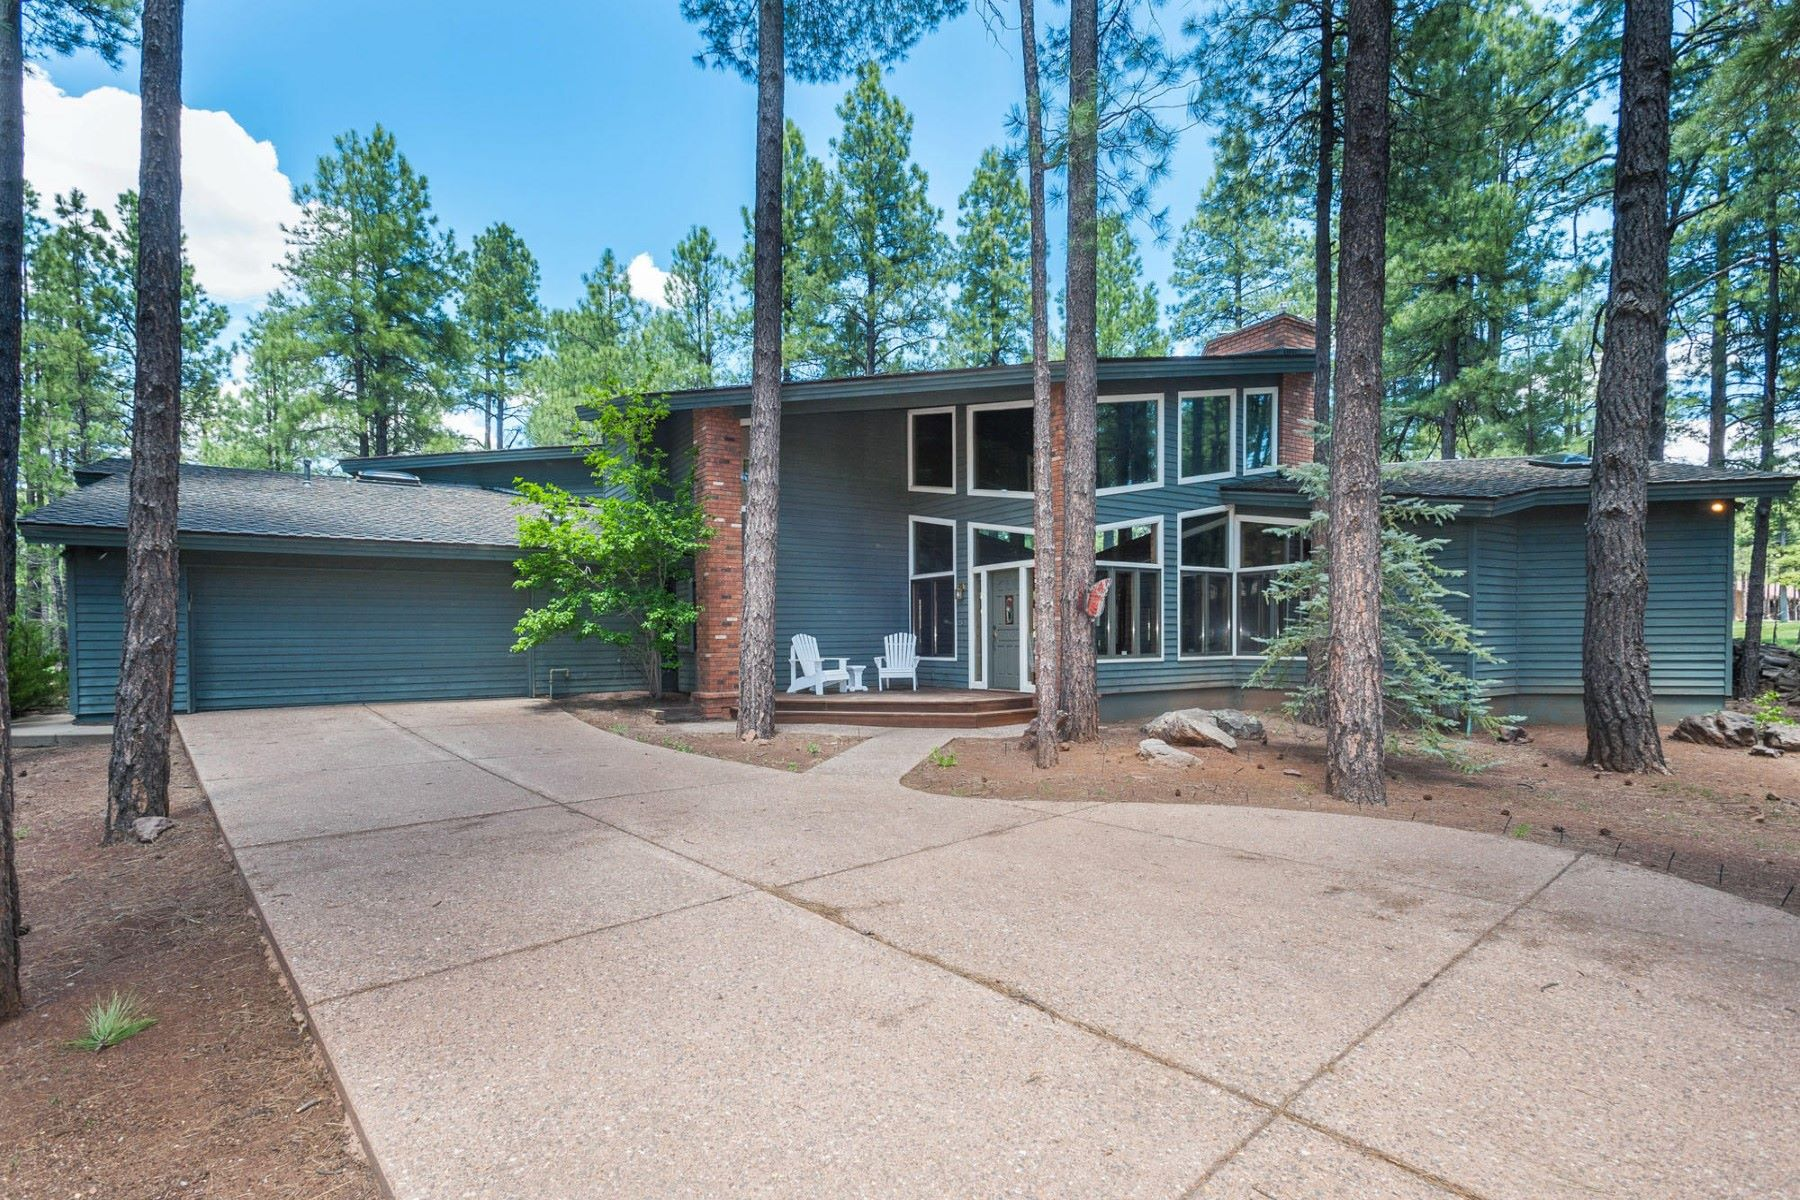 Single Family Home for Sale at Beautiful flagstaff home with incredible views 112-3799 Bear Howard Flagstaff, Arizona, 86001 United States